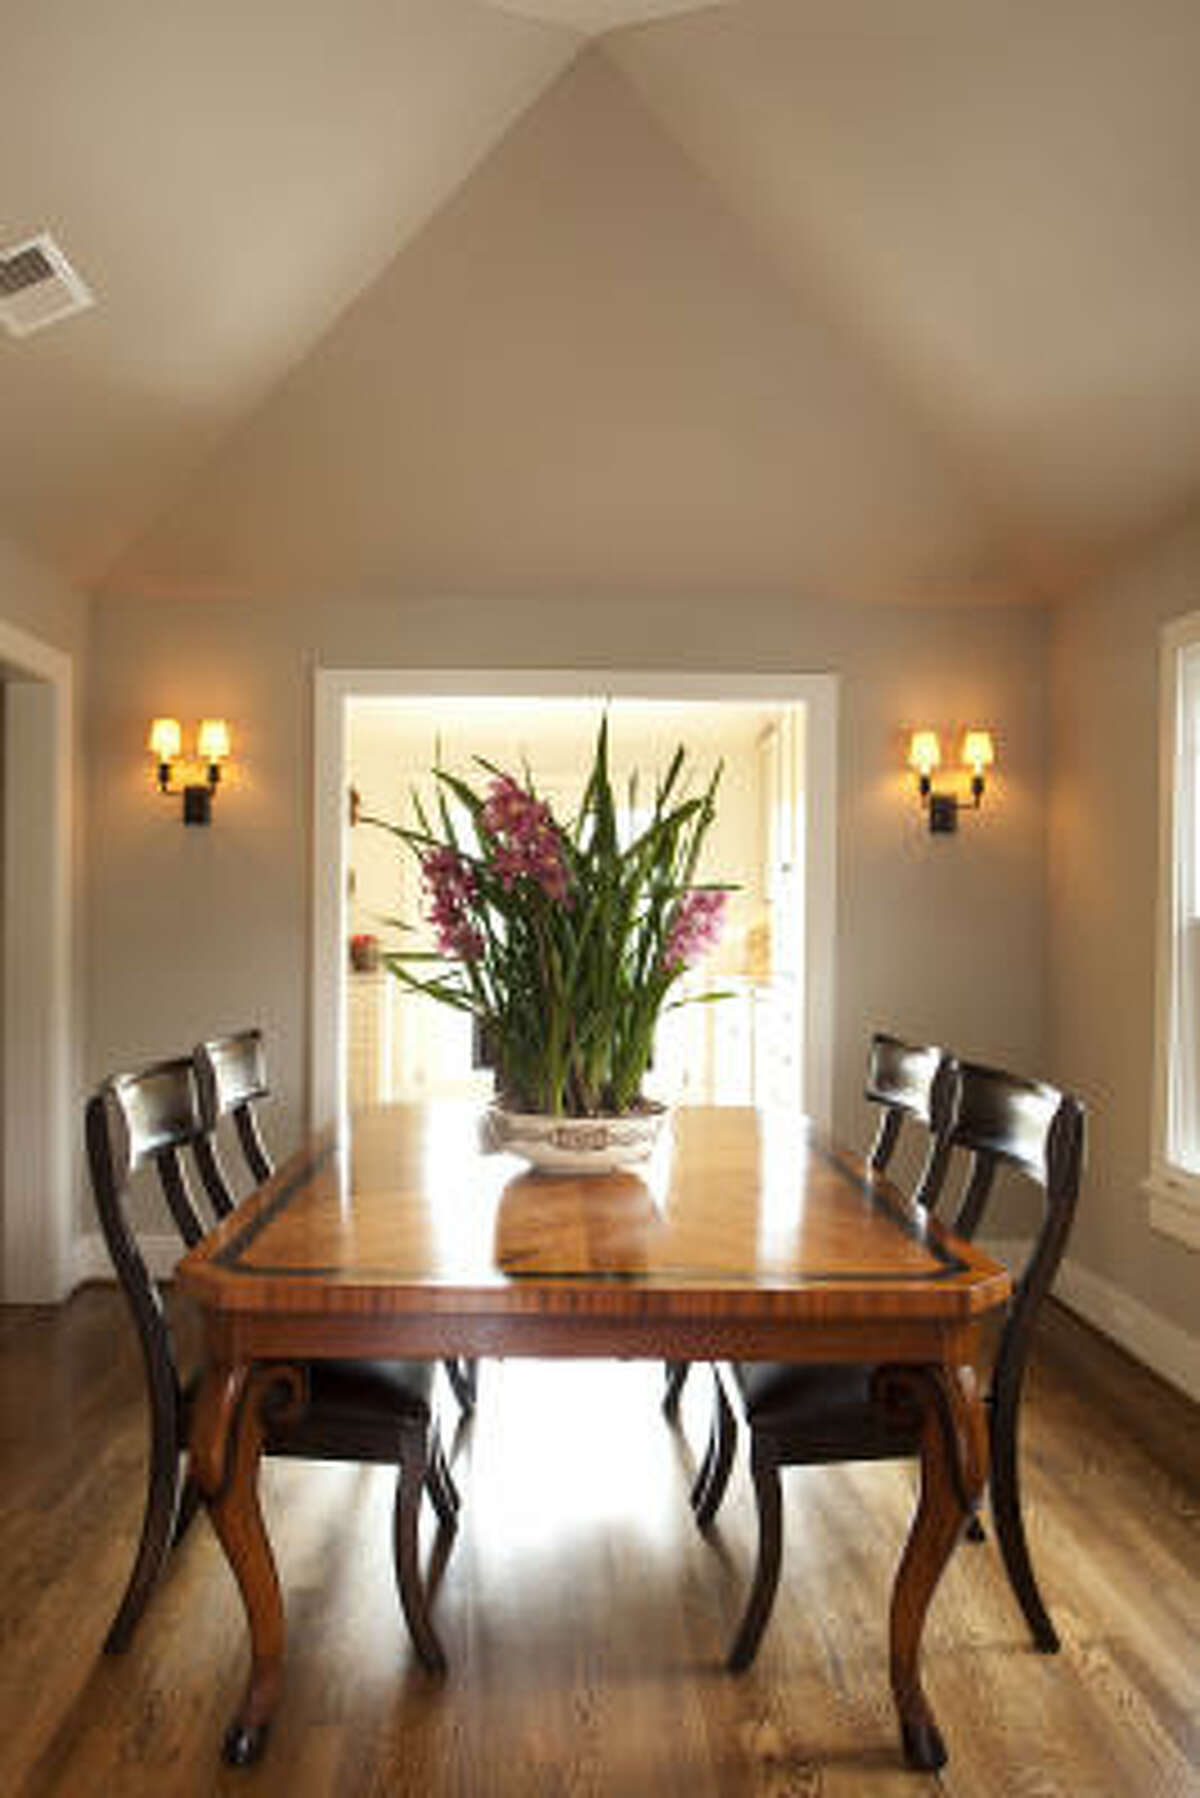 The dining room's vaulted ceiling makes the space feel larger than it is. The custom dining table features cloven hoof-style legs.